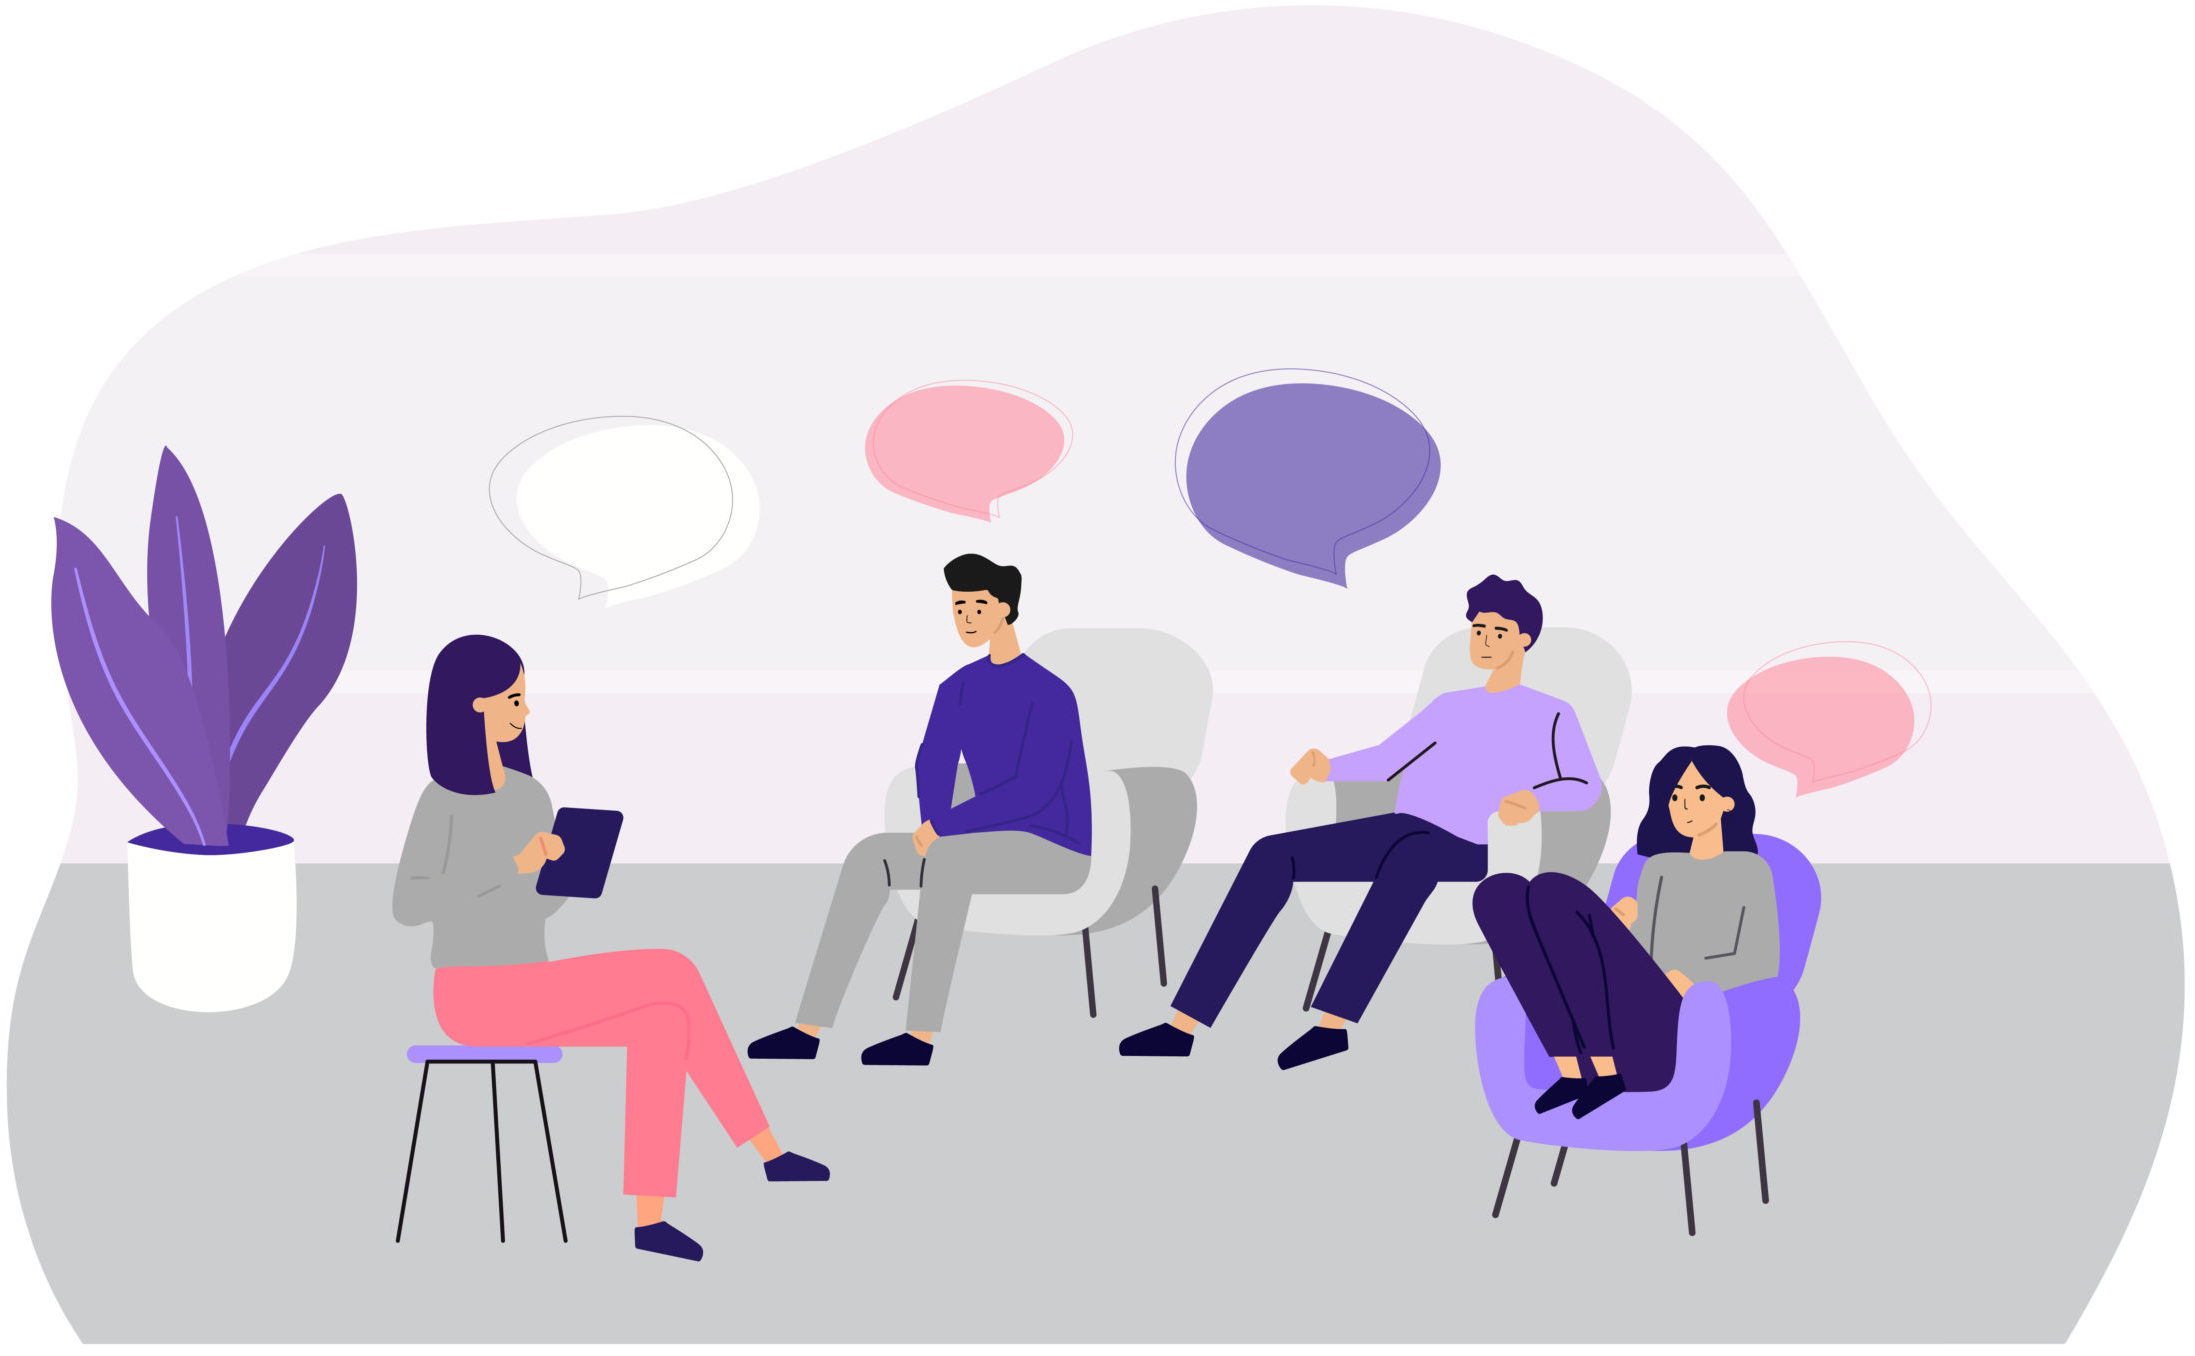 Doctor counseling people at group therapy flat vector illustration. Men and women in psychologist session talking about problems. Medical support and addiction and psychotherapy concept